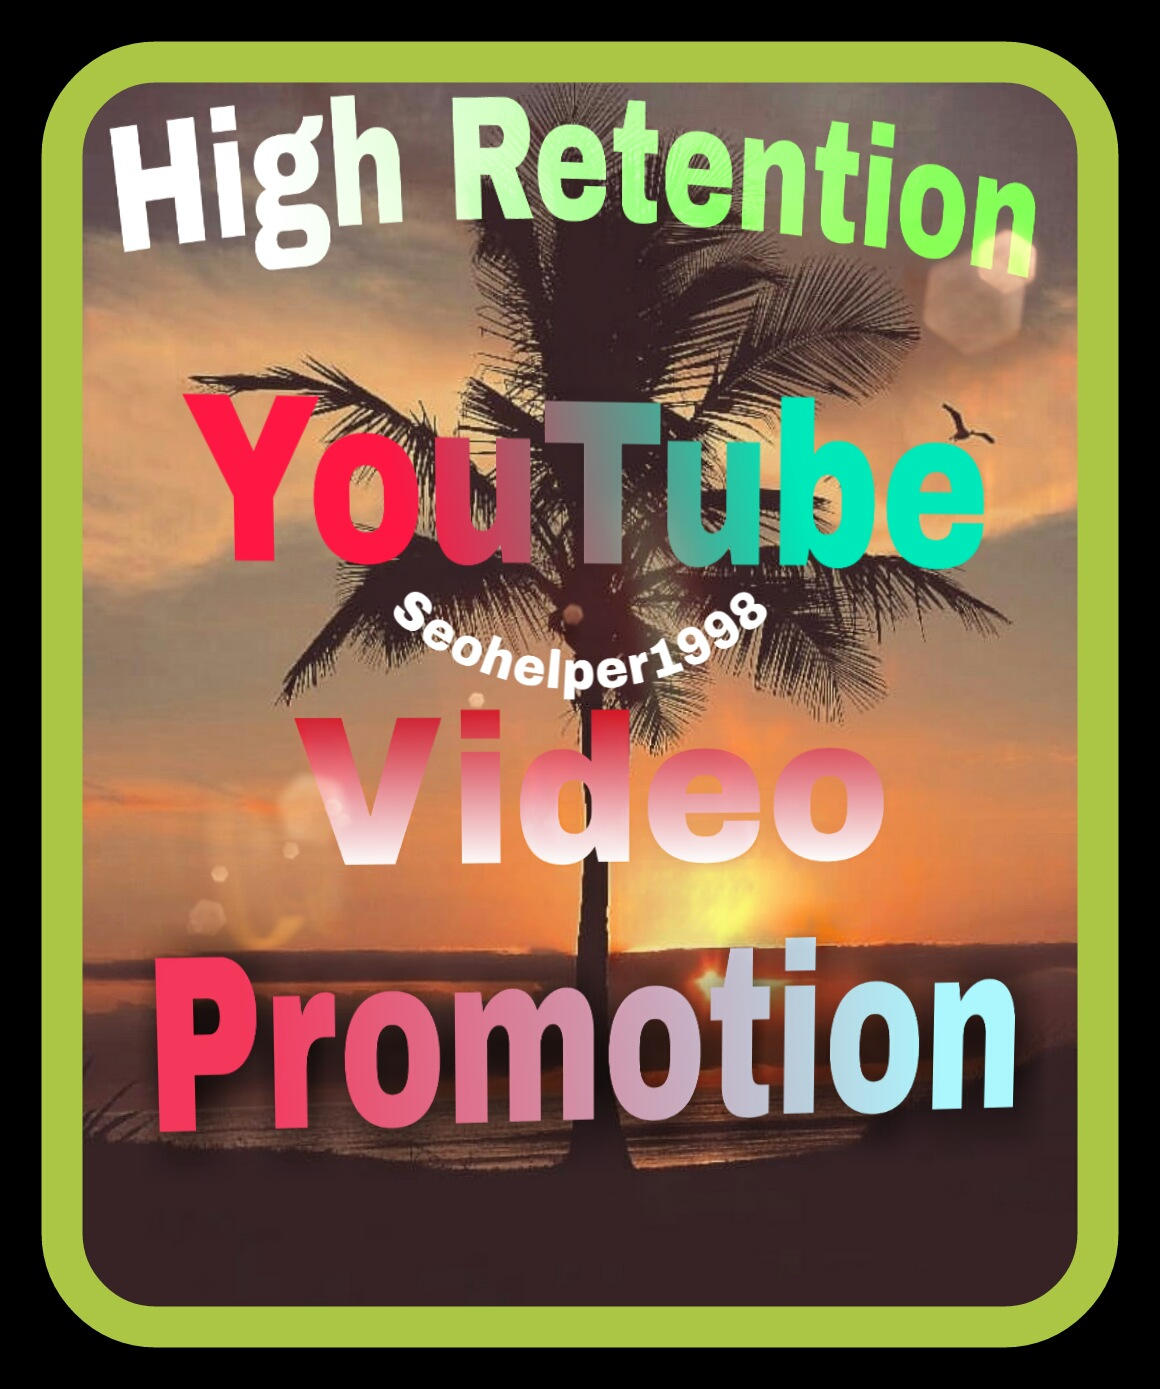 Very fast high retention YouTube promotion and social media marketing